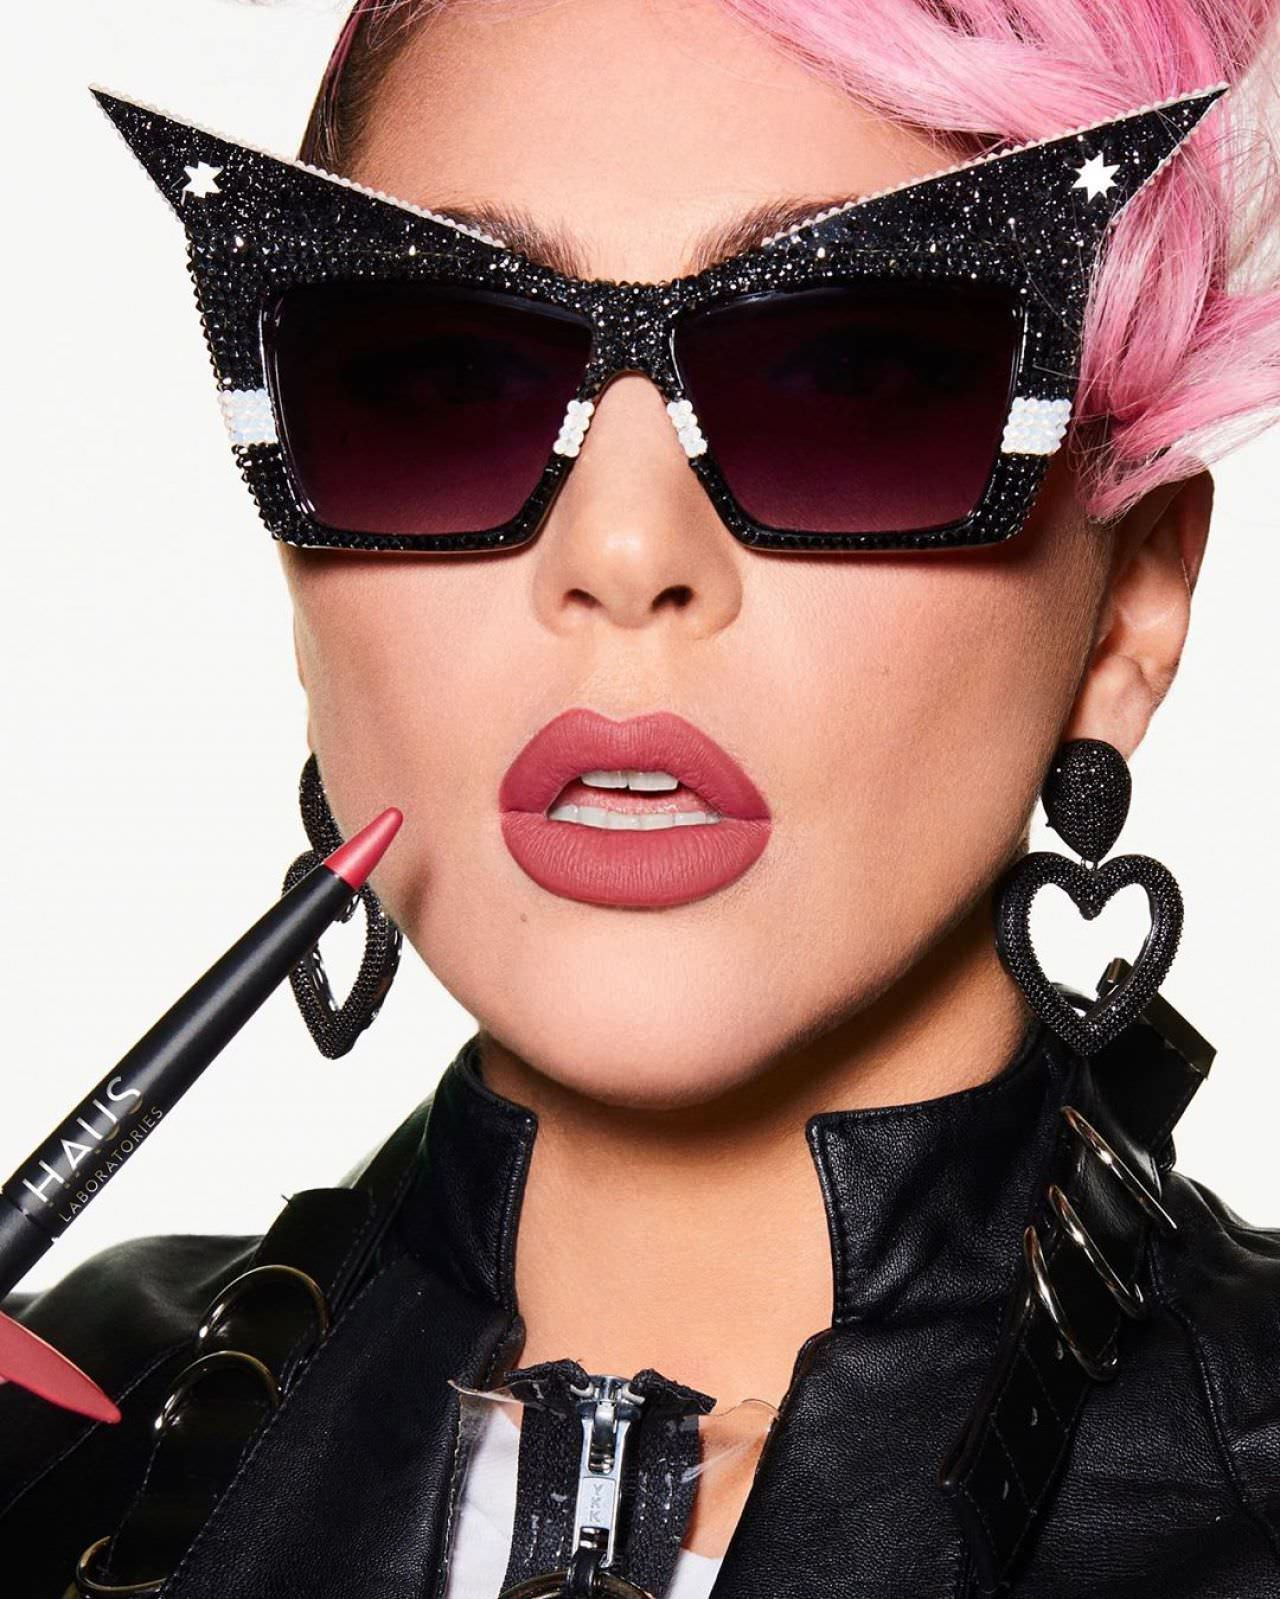 Lady Gaga Photoshoot for Haus Laboratories 2020